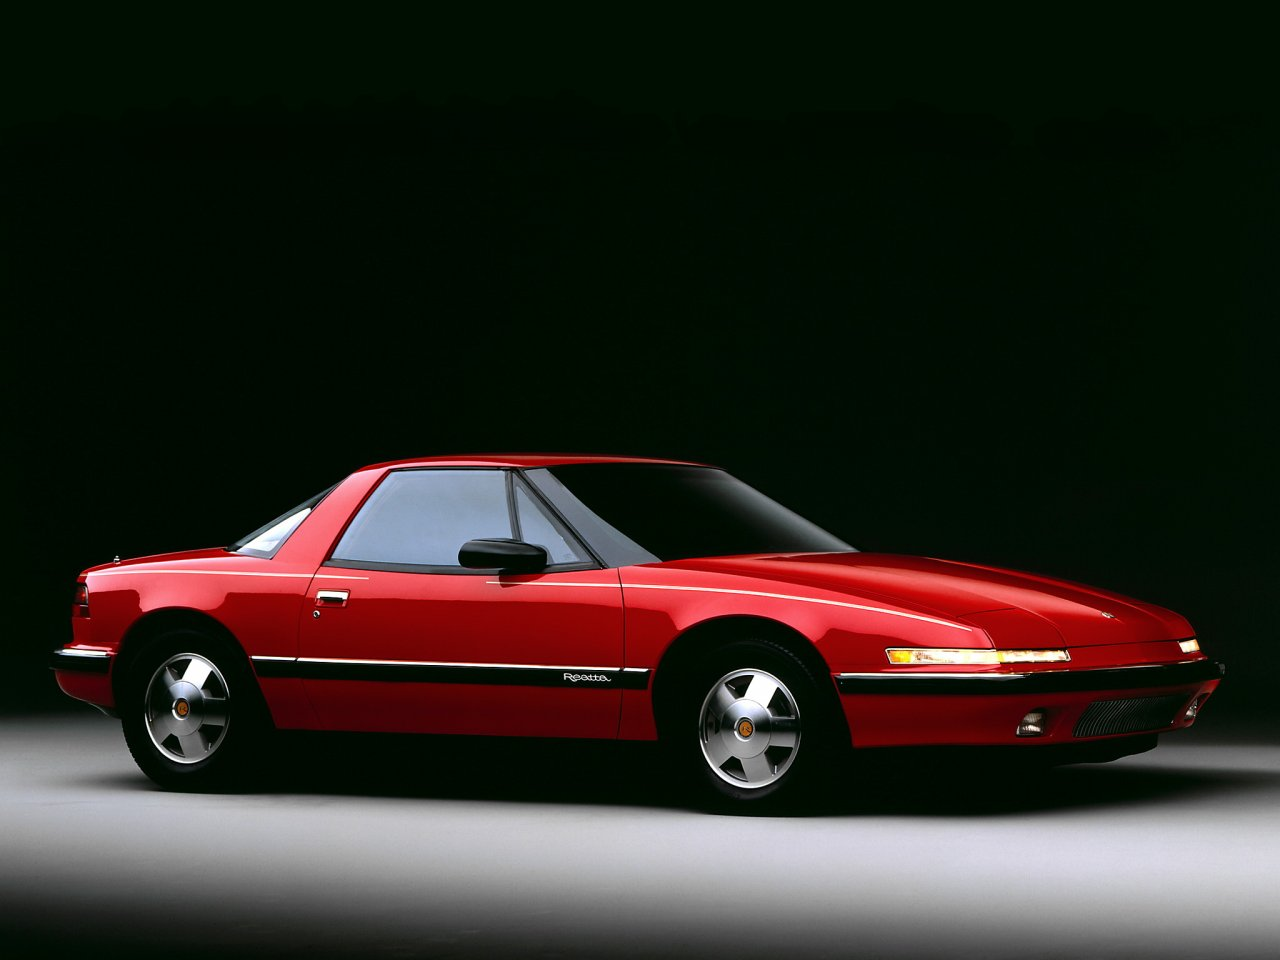 buick reatta images #9